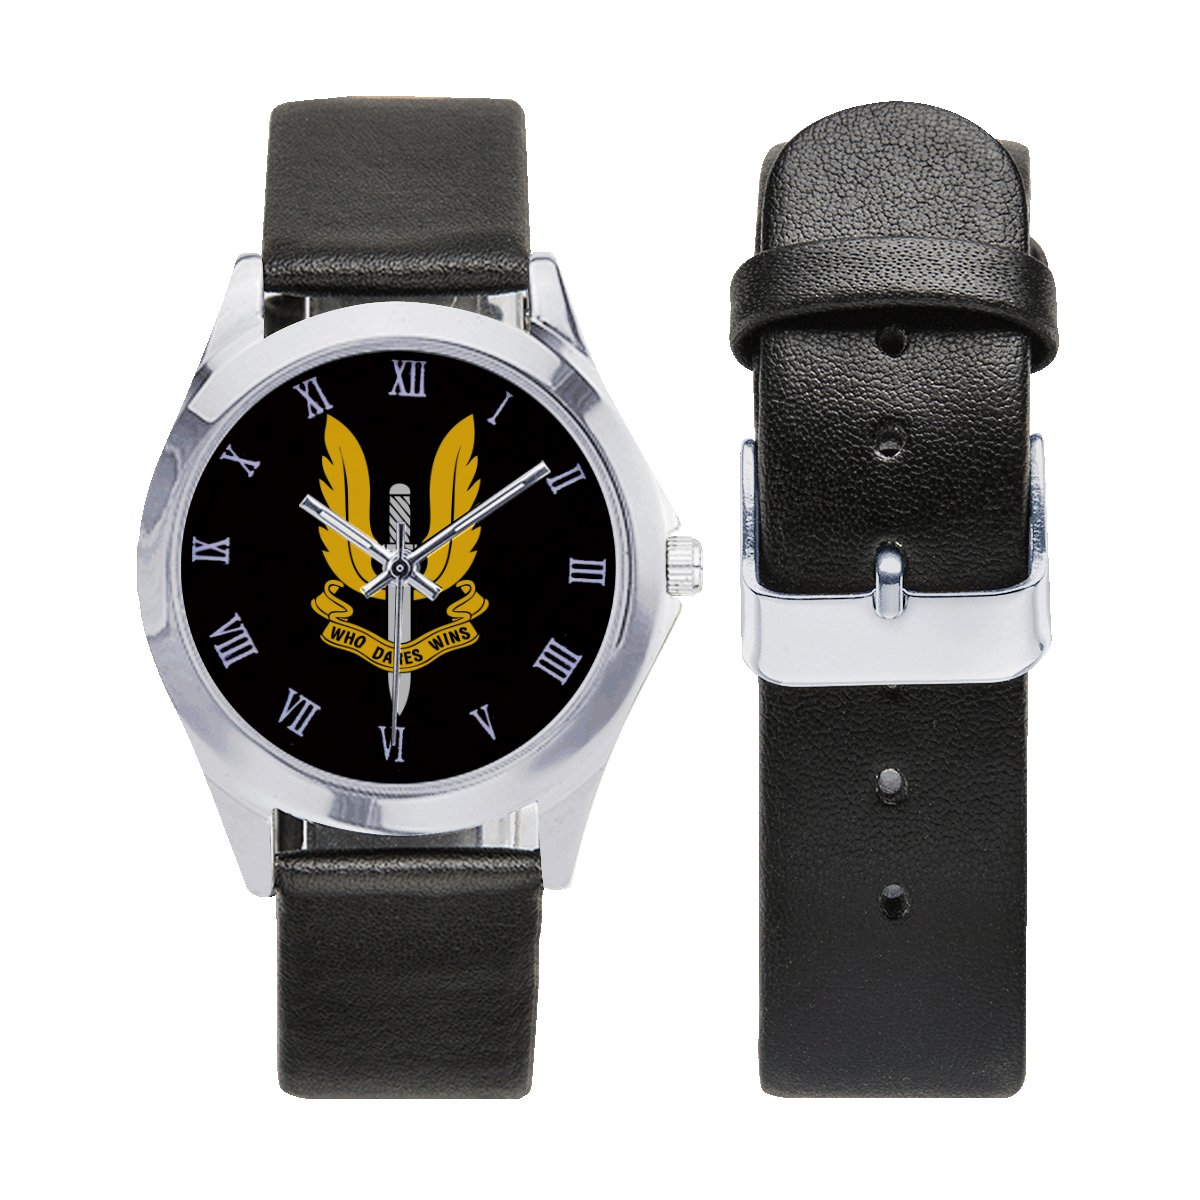 Special Air Service UK Special Forces Army Leather Strap Watch Wrist Watches a perfect accessory